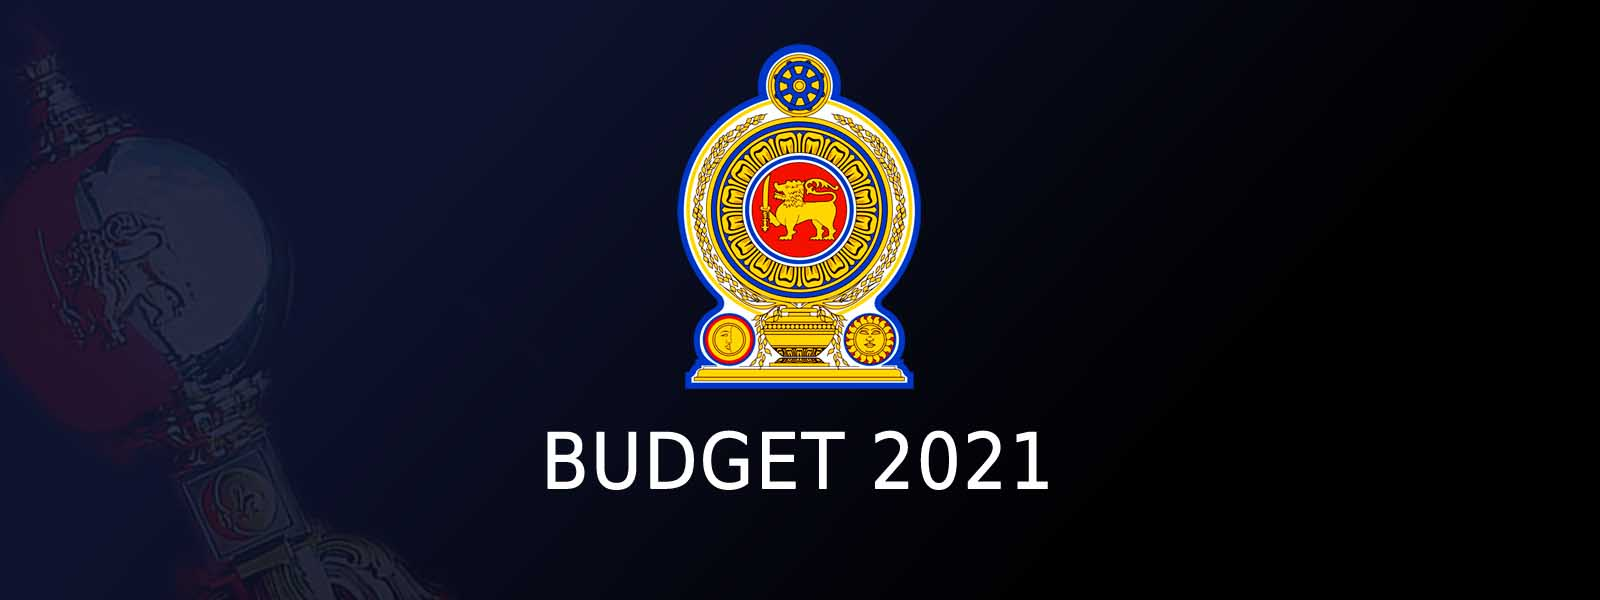 Tensions at urban councils over passage of 2021 budget